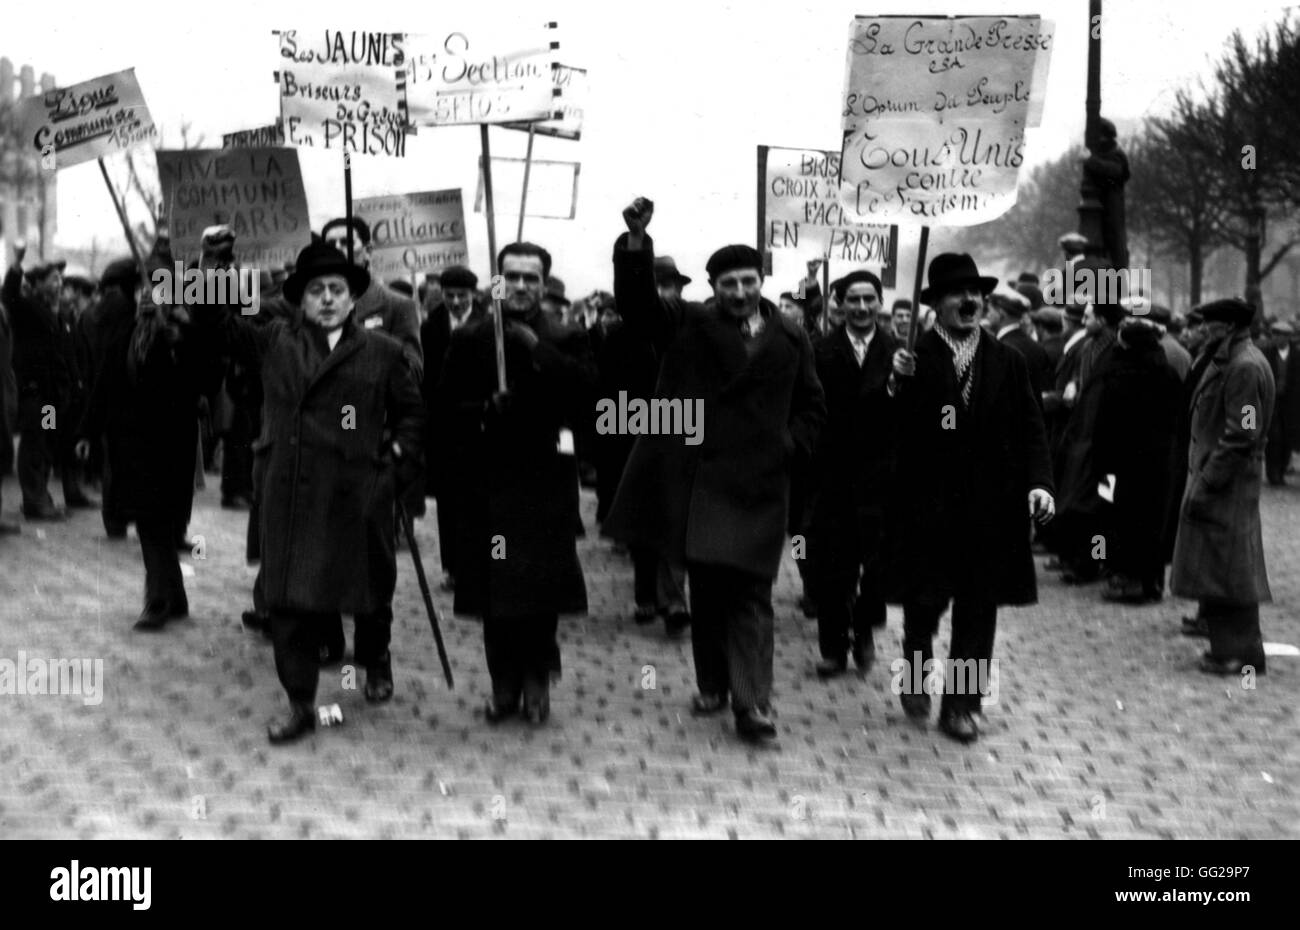 Riots in Paris, demonstrators holding placards France February 1934 - Stock Image